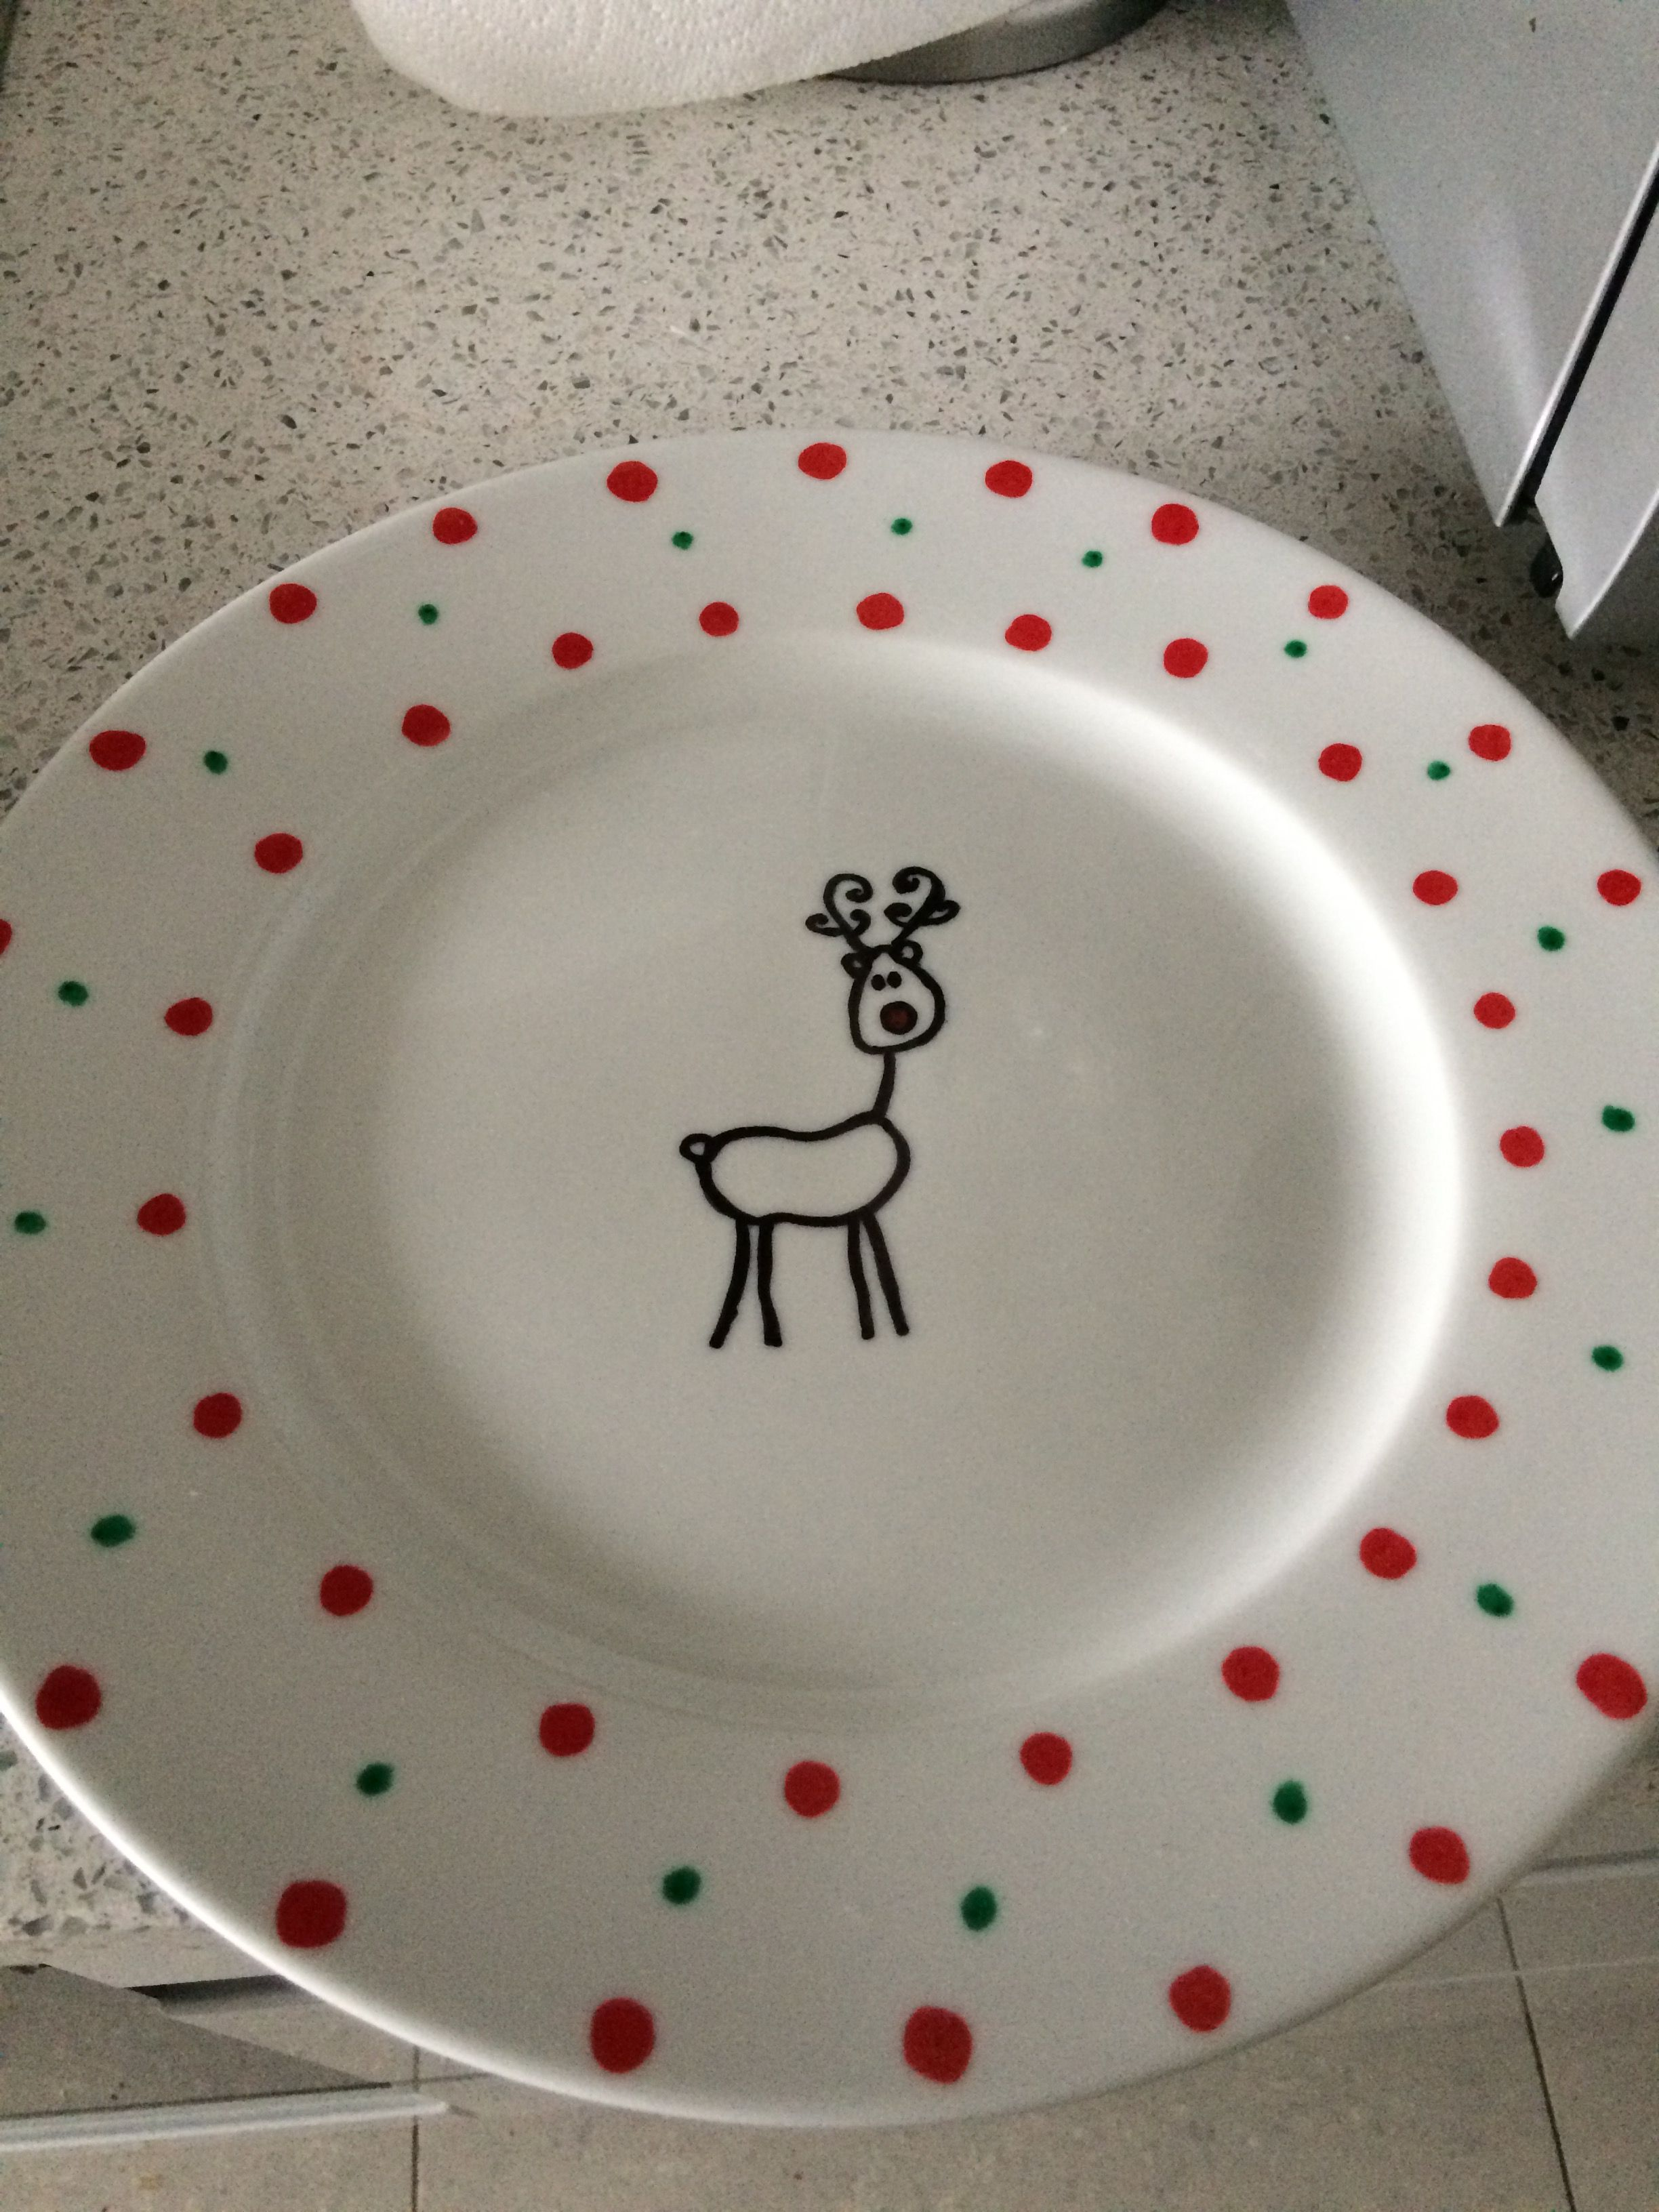 Decorated With Sharpies Dinner Plate Was Only 2 In Asda Took About 10mins Think I Might Make A Cake Stand With It For Chri Plates How To Make Cake Homemade